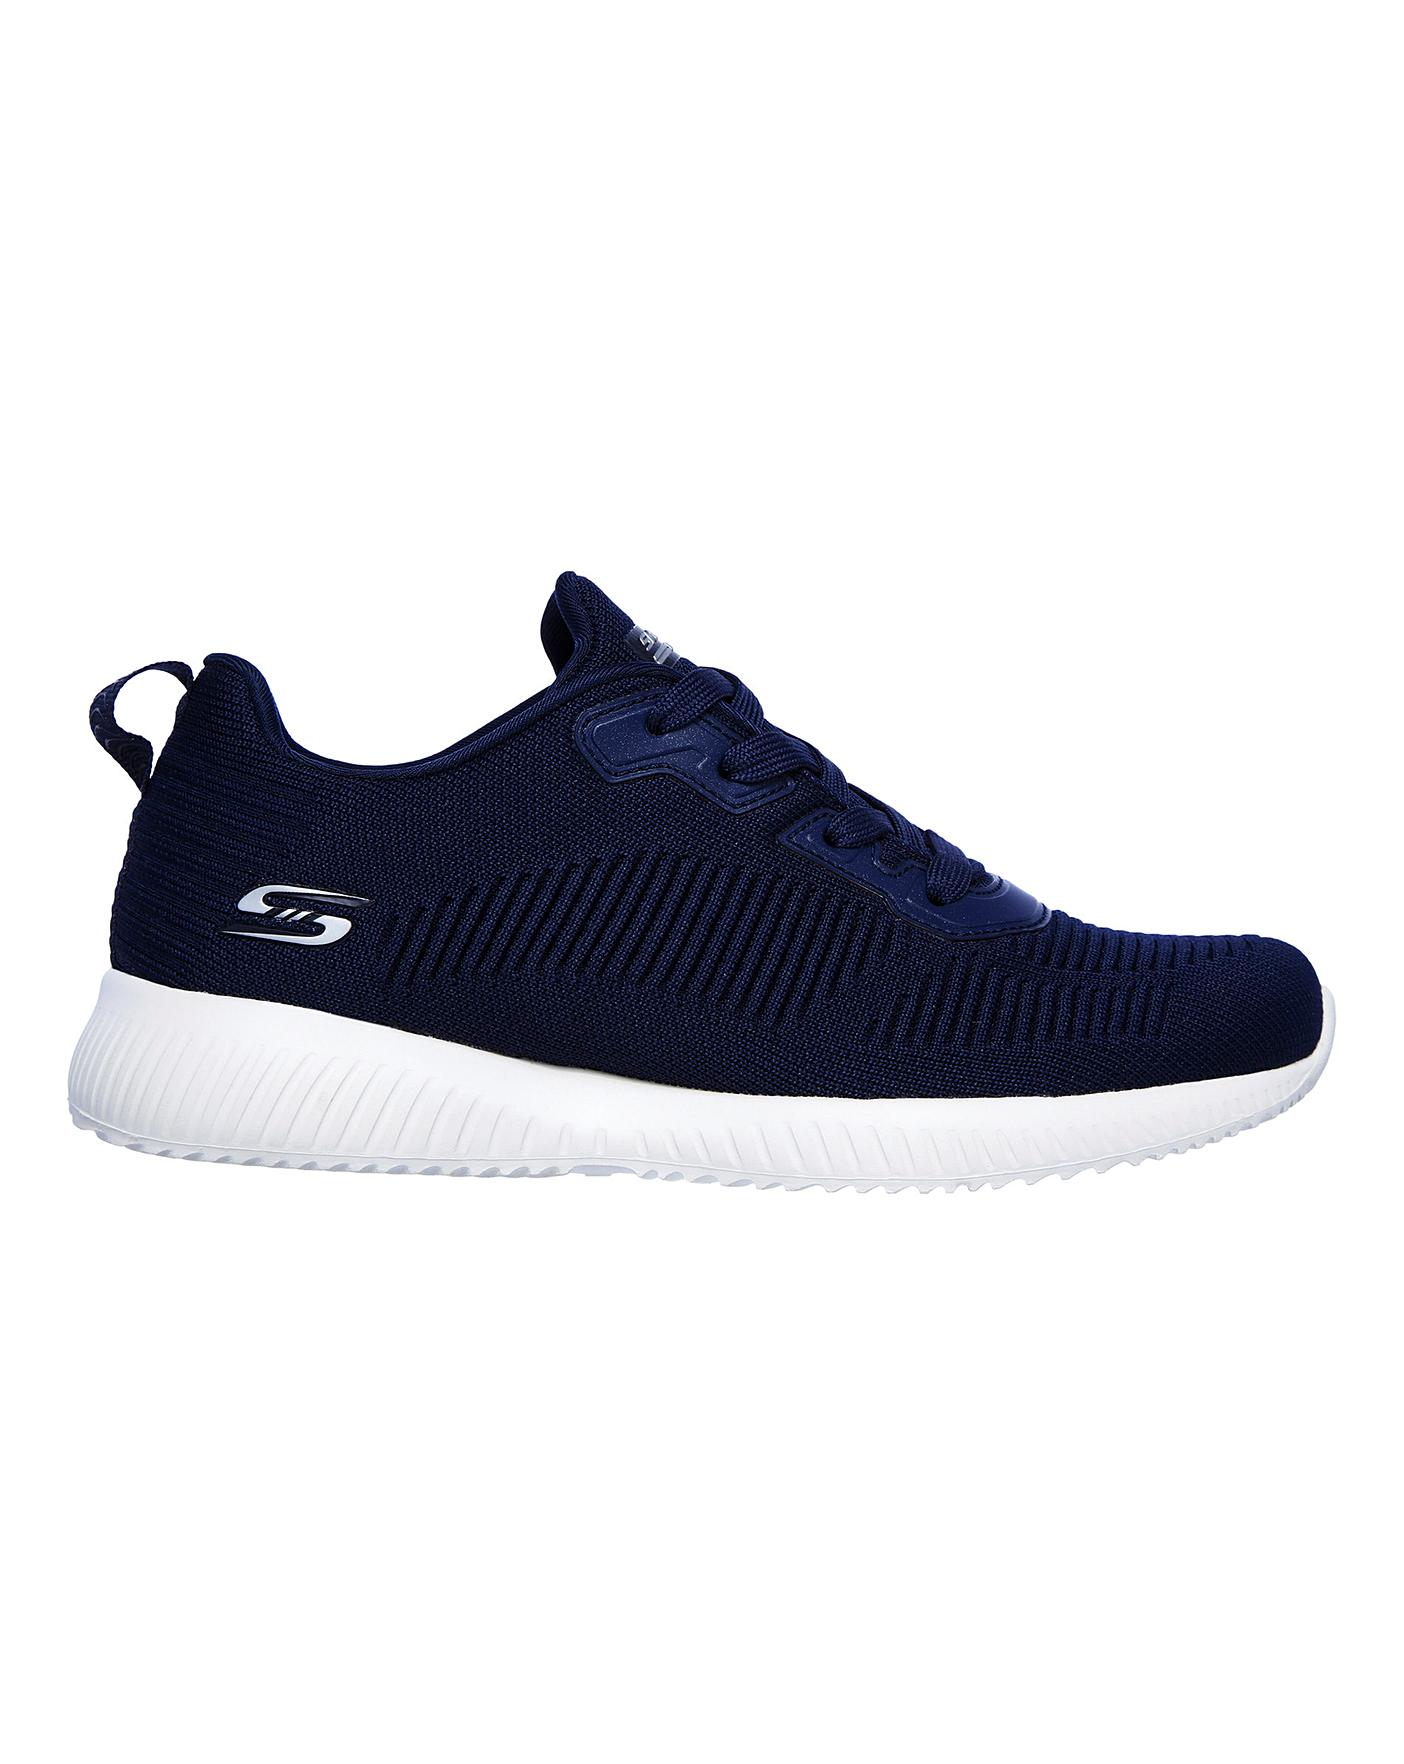 Skechers Bobs Squad Trainers | Oxendales